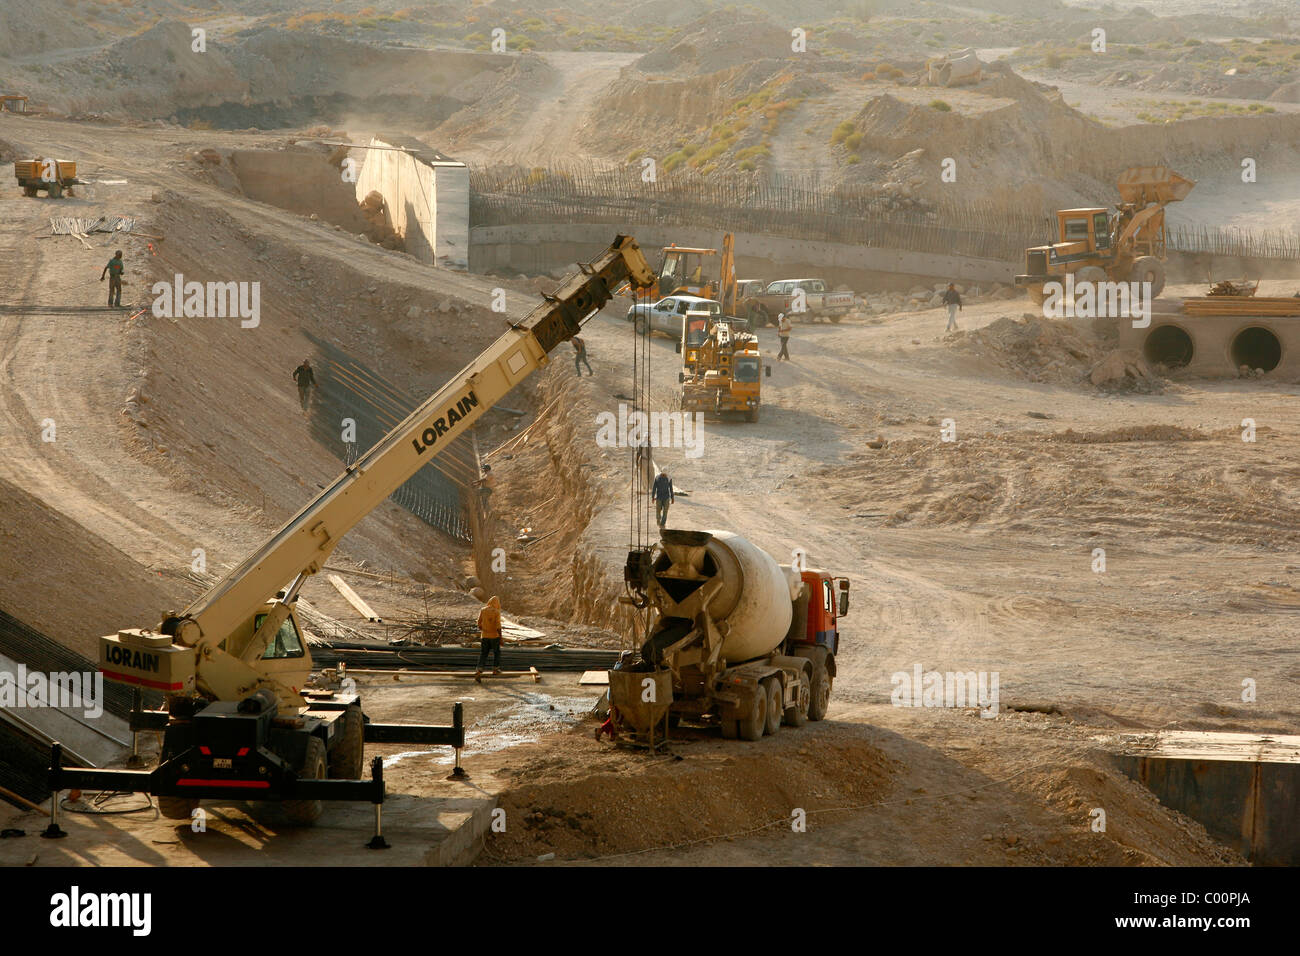 Construction work of a dam that will lead the water collected in Wadi mujib into the dead sea, Jordan. - Stock Image